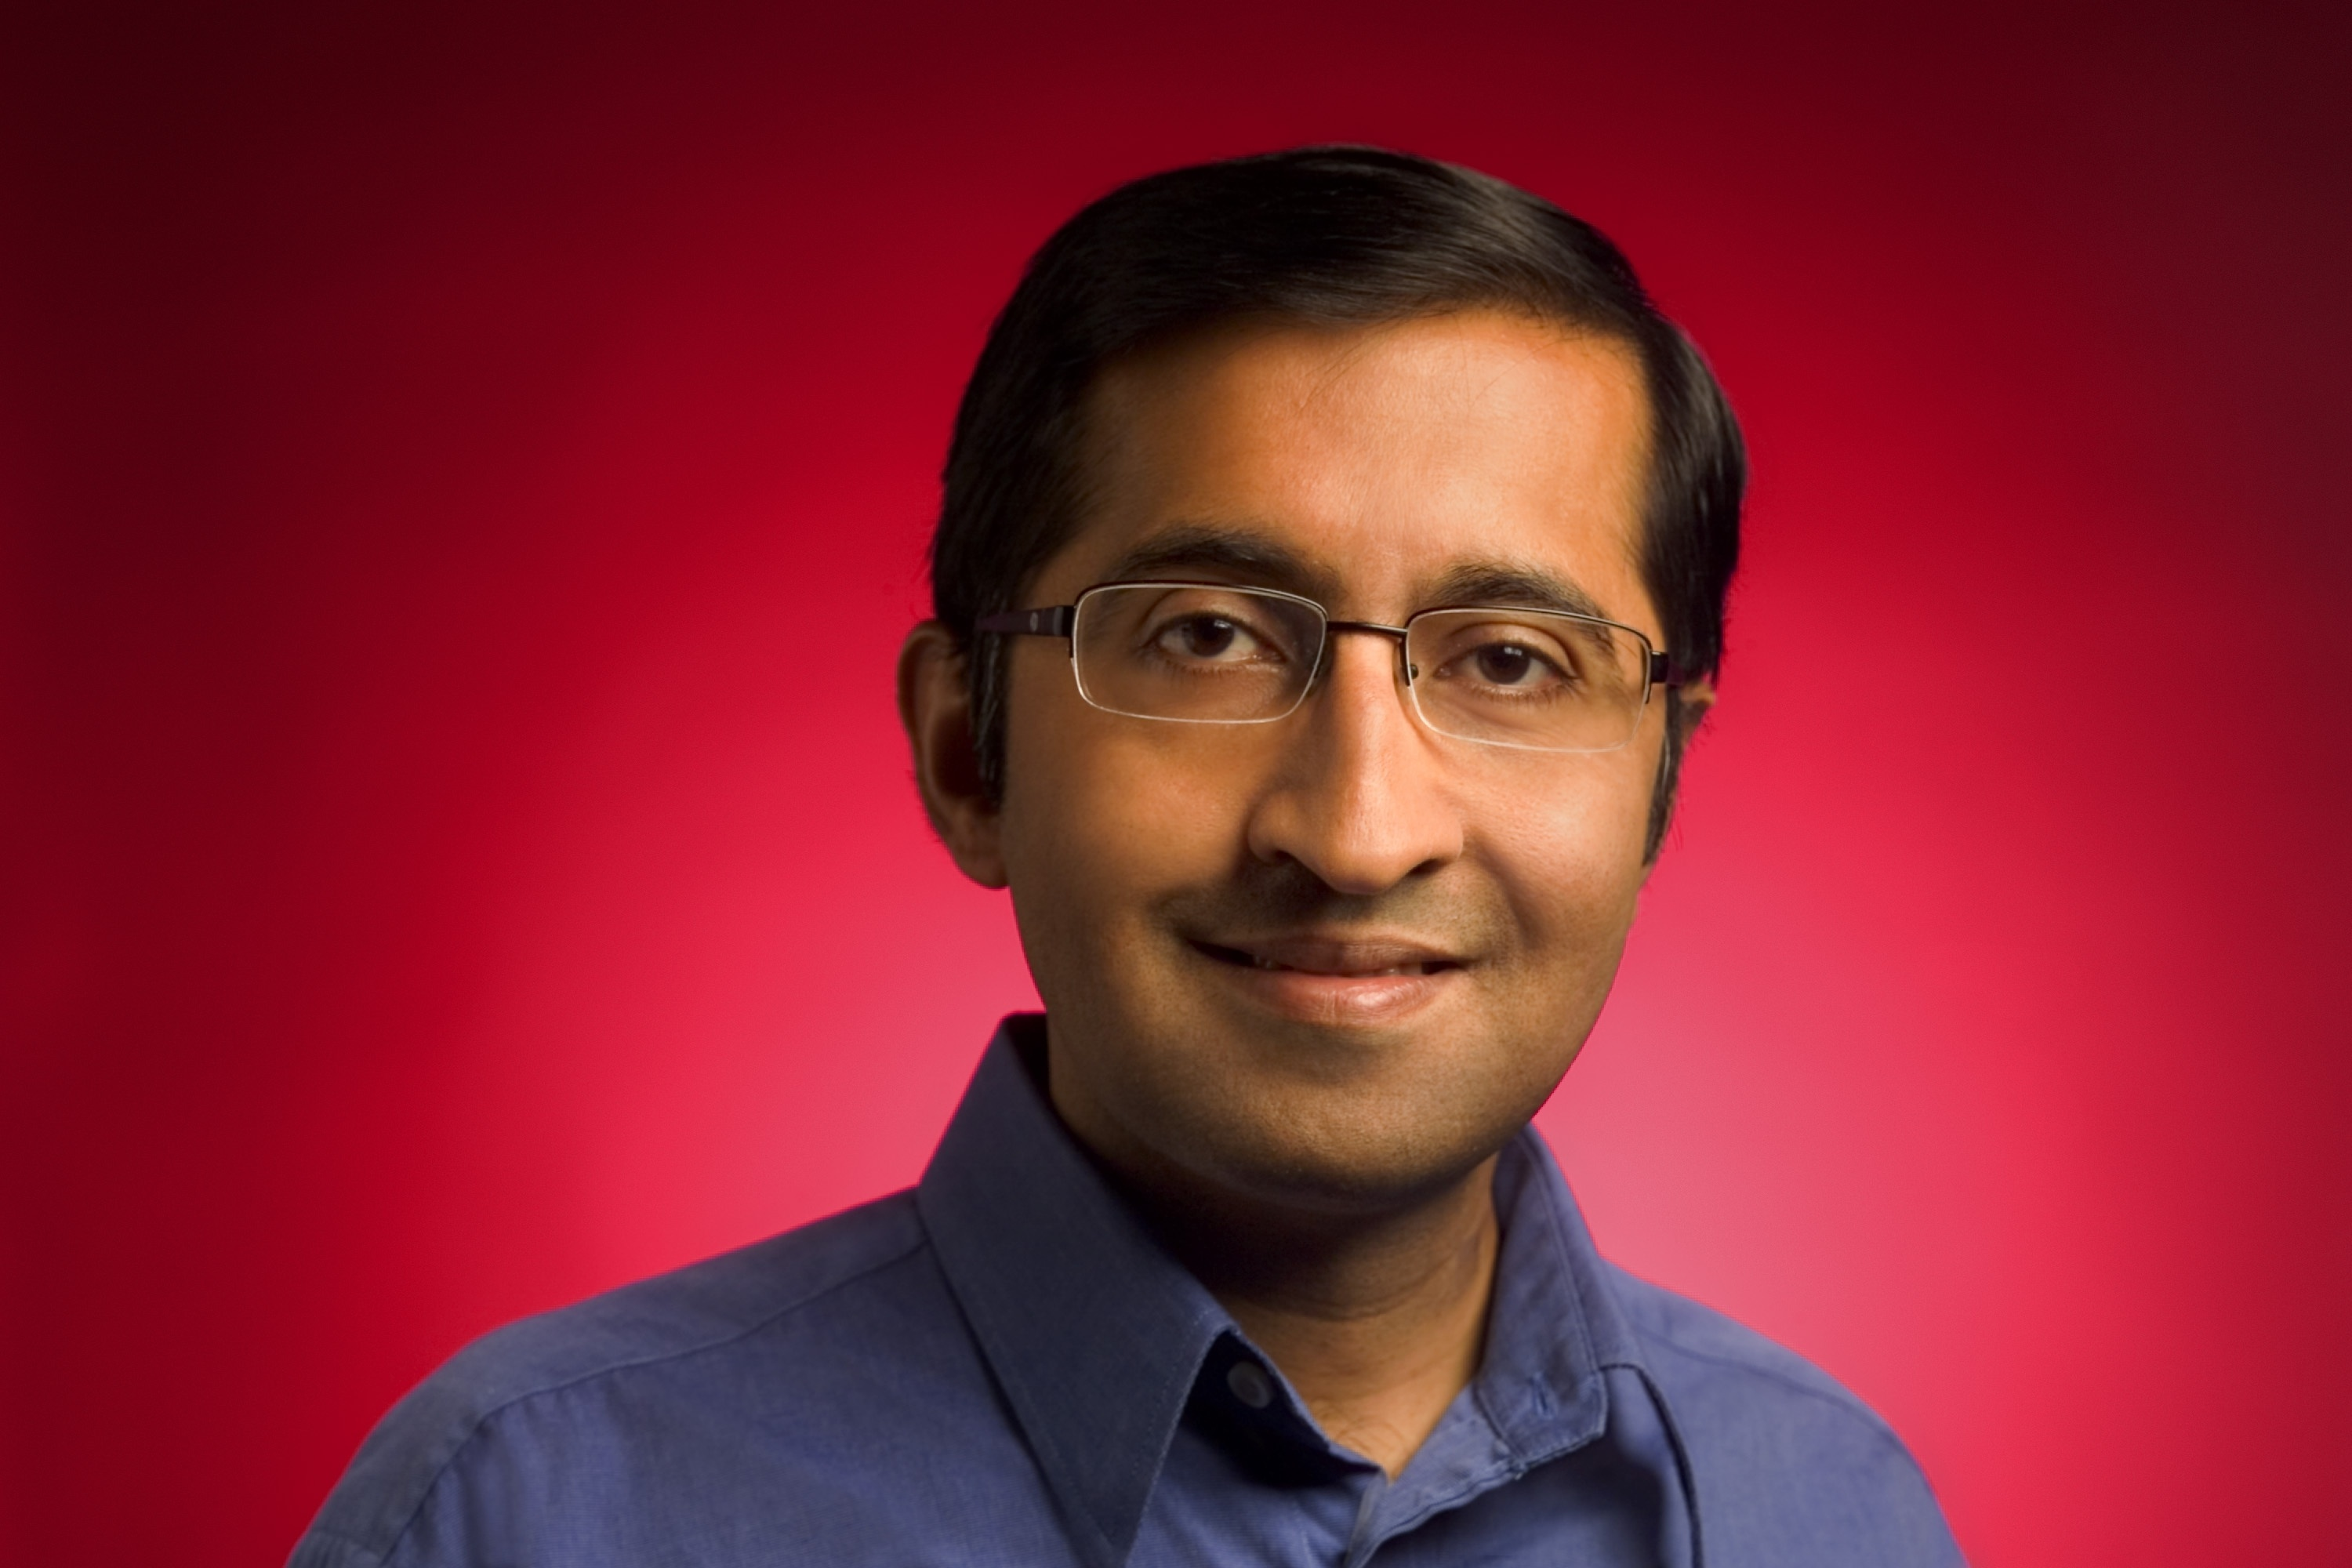 Krishna Bharat, founder and engineering head of Google News